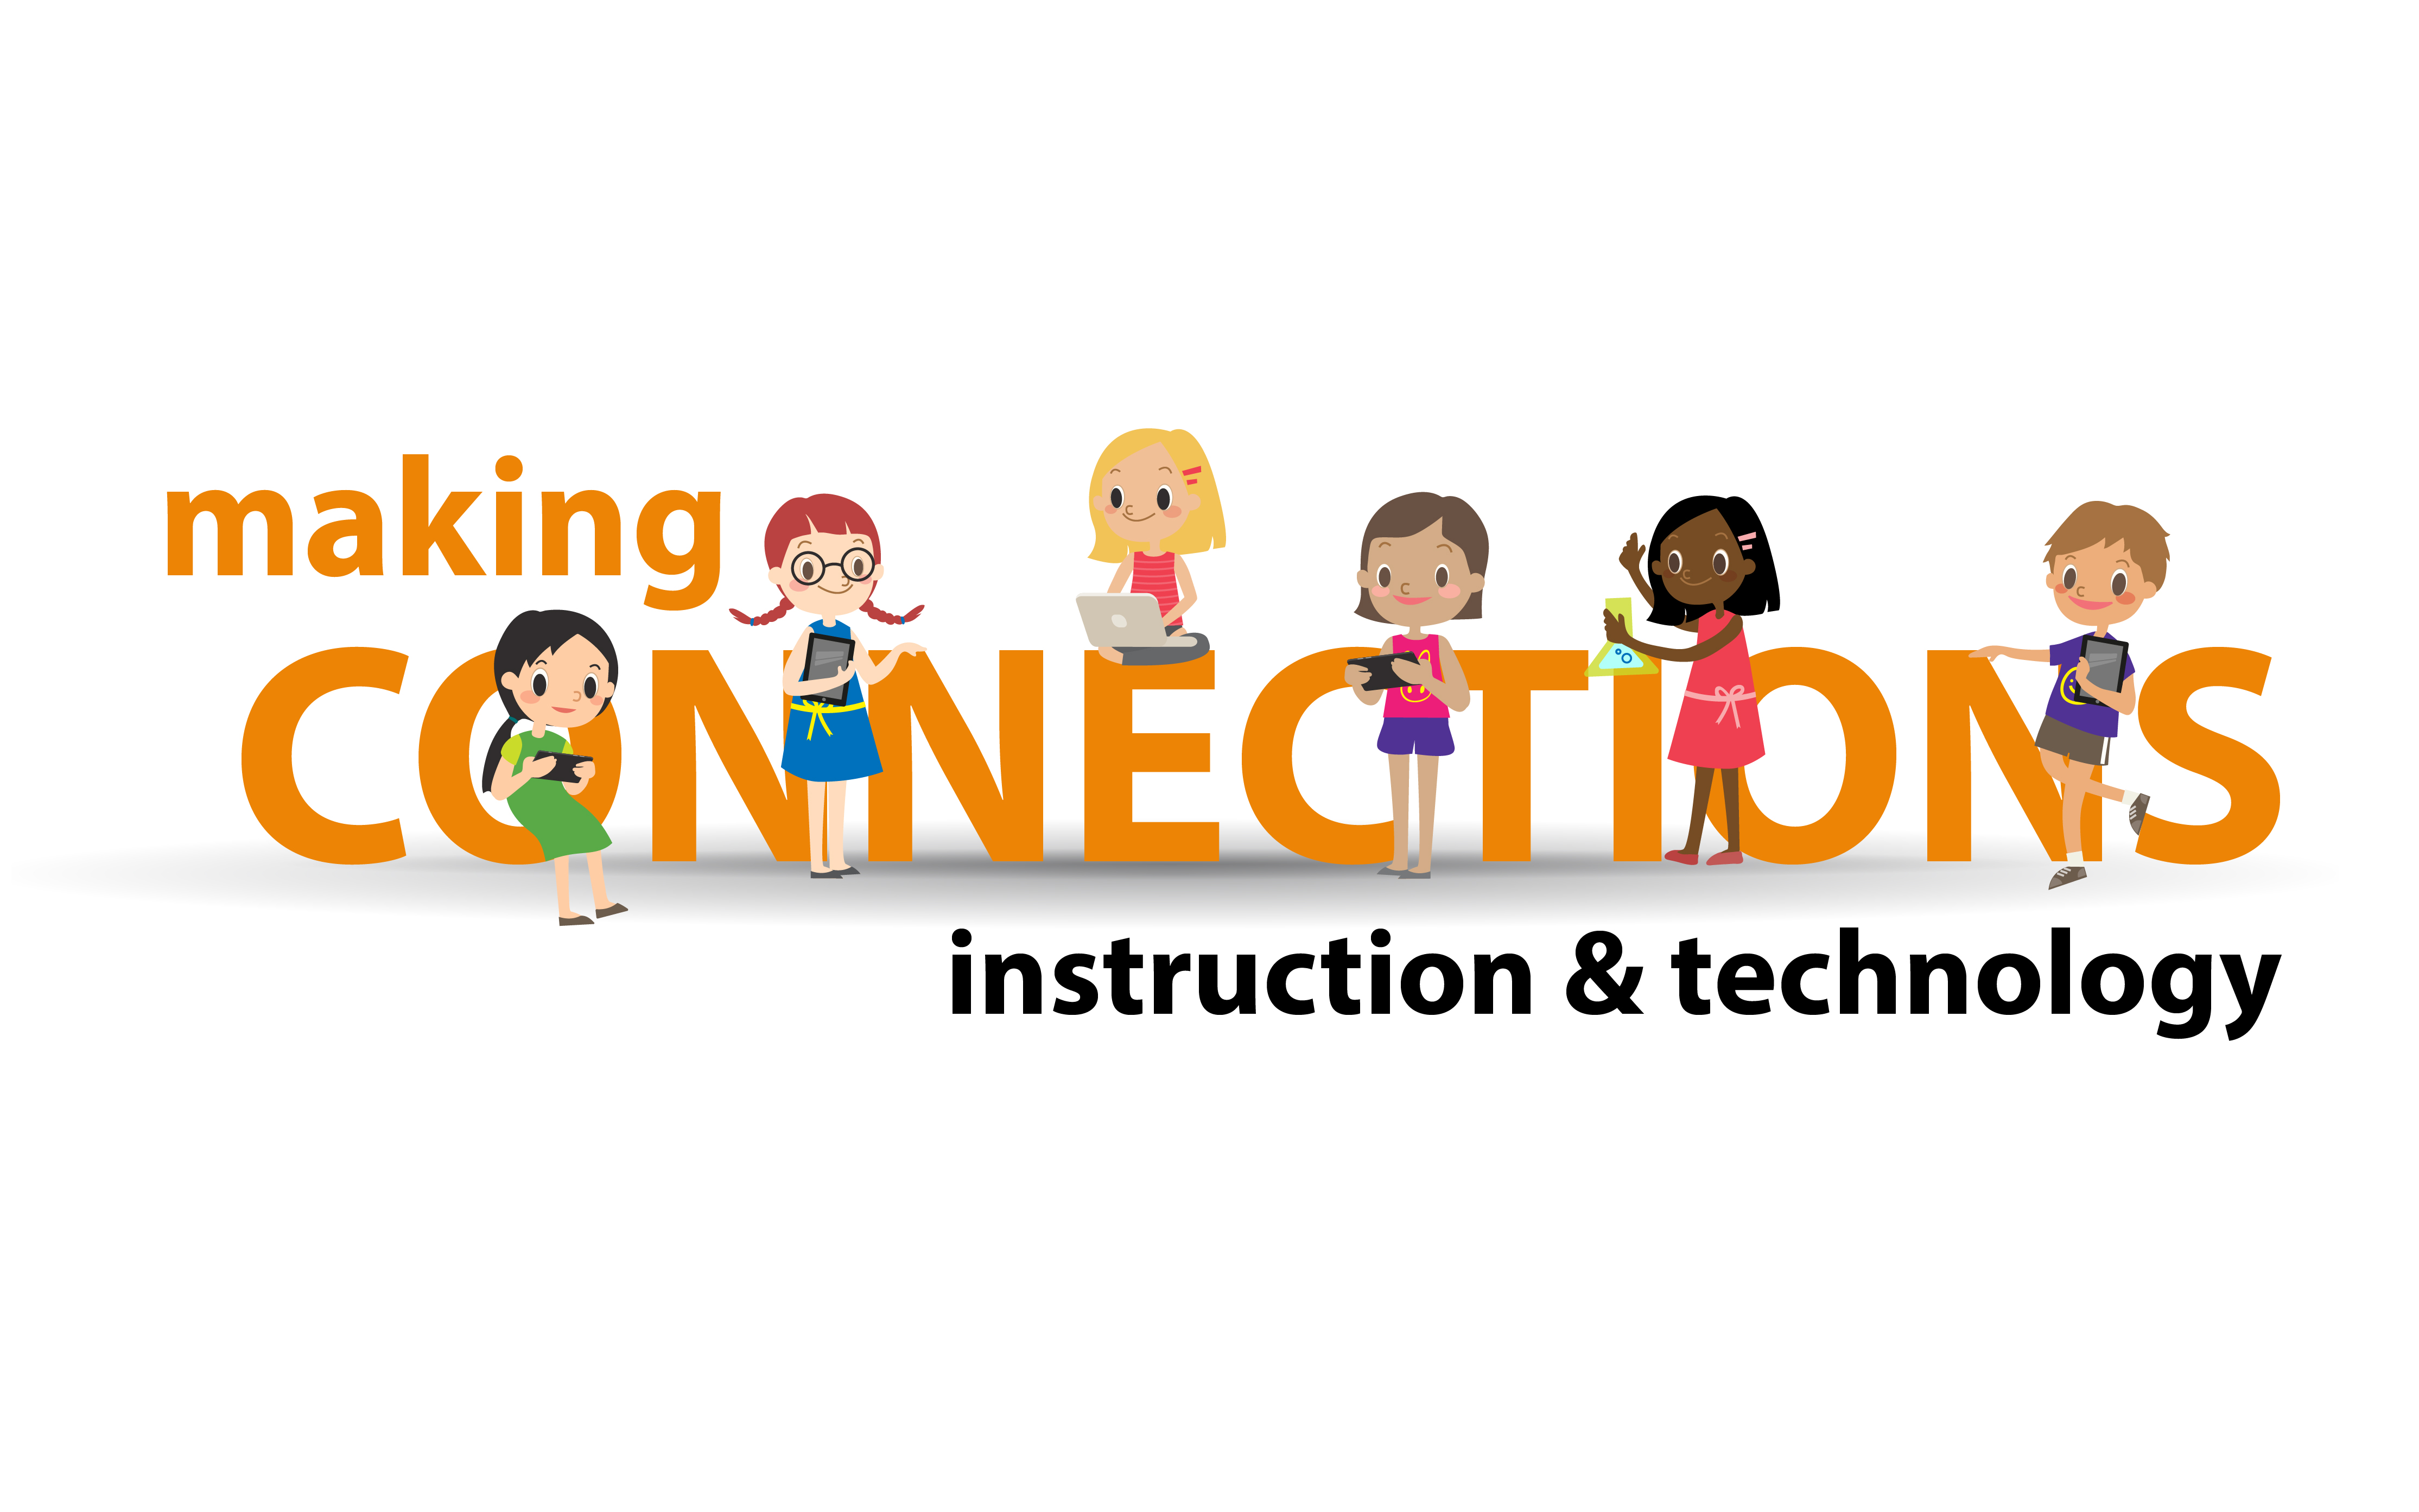 Making Connections: Instruction & Technology